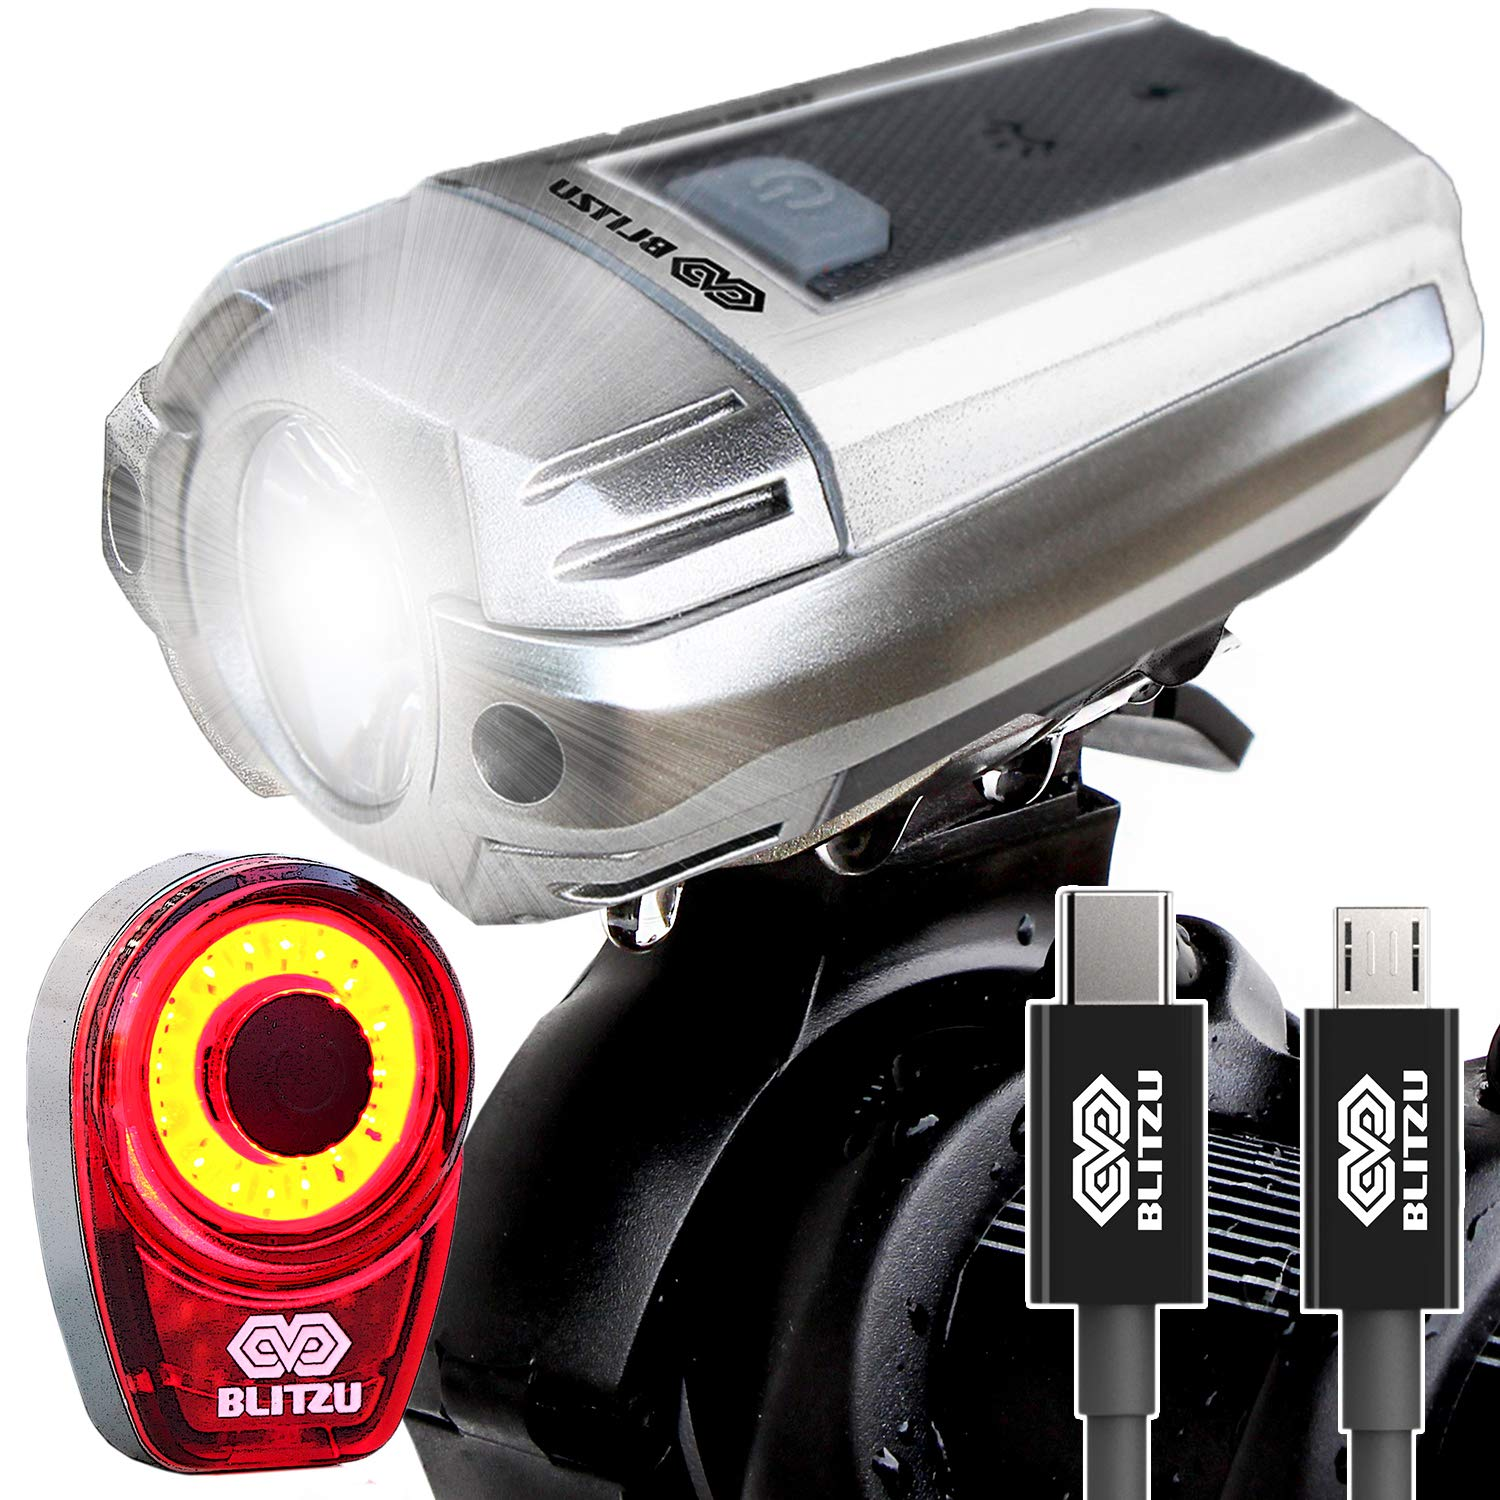 BLITZU Gator 390 USB Rechargeable LED Bike Light Set, Bicycle Headlight Front & Free Rear Back Tail Light. Waterproof, Easy to Install for Kids Men Women Road Cycling Safety Commuter Flashlight White by BLITZU